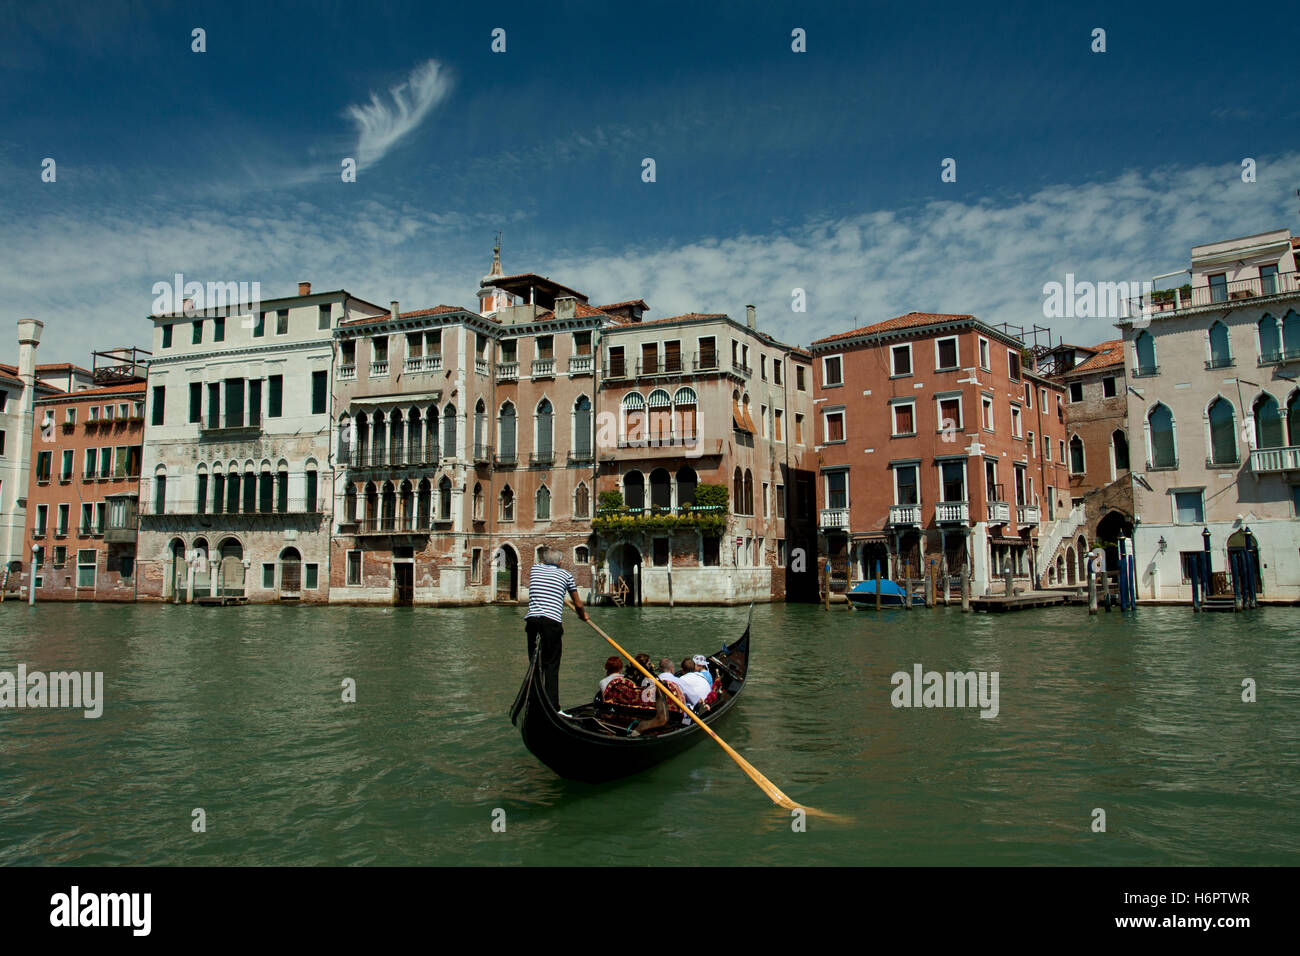 Gondola on the Grand Canal in Venice, Italy Stock Photo